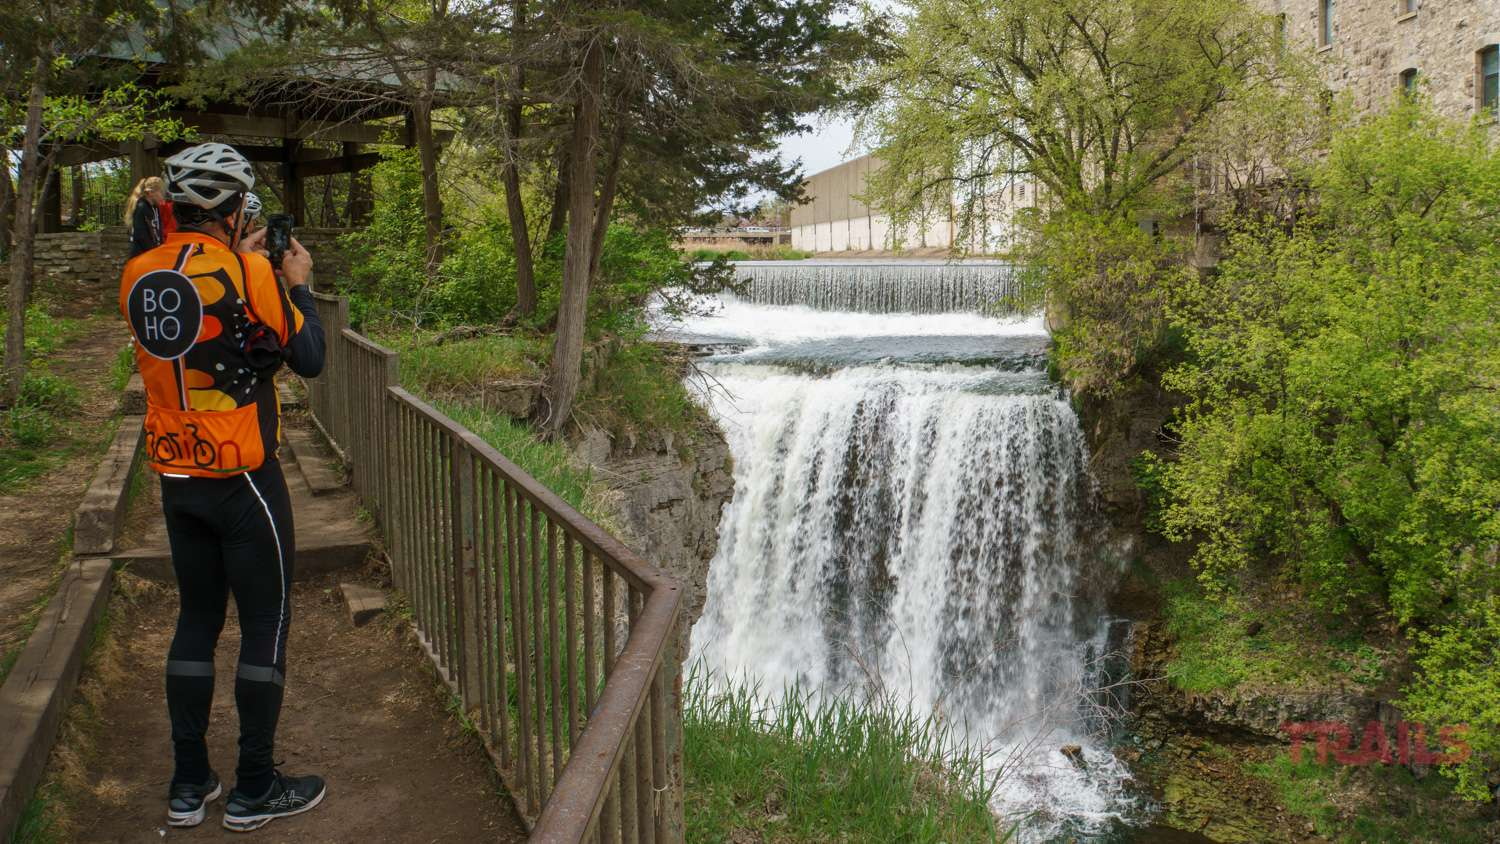 A man in bike gear takes a photo of Vermillion Falls in Hastings, MN